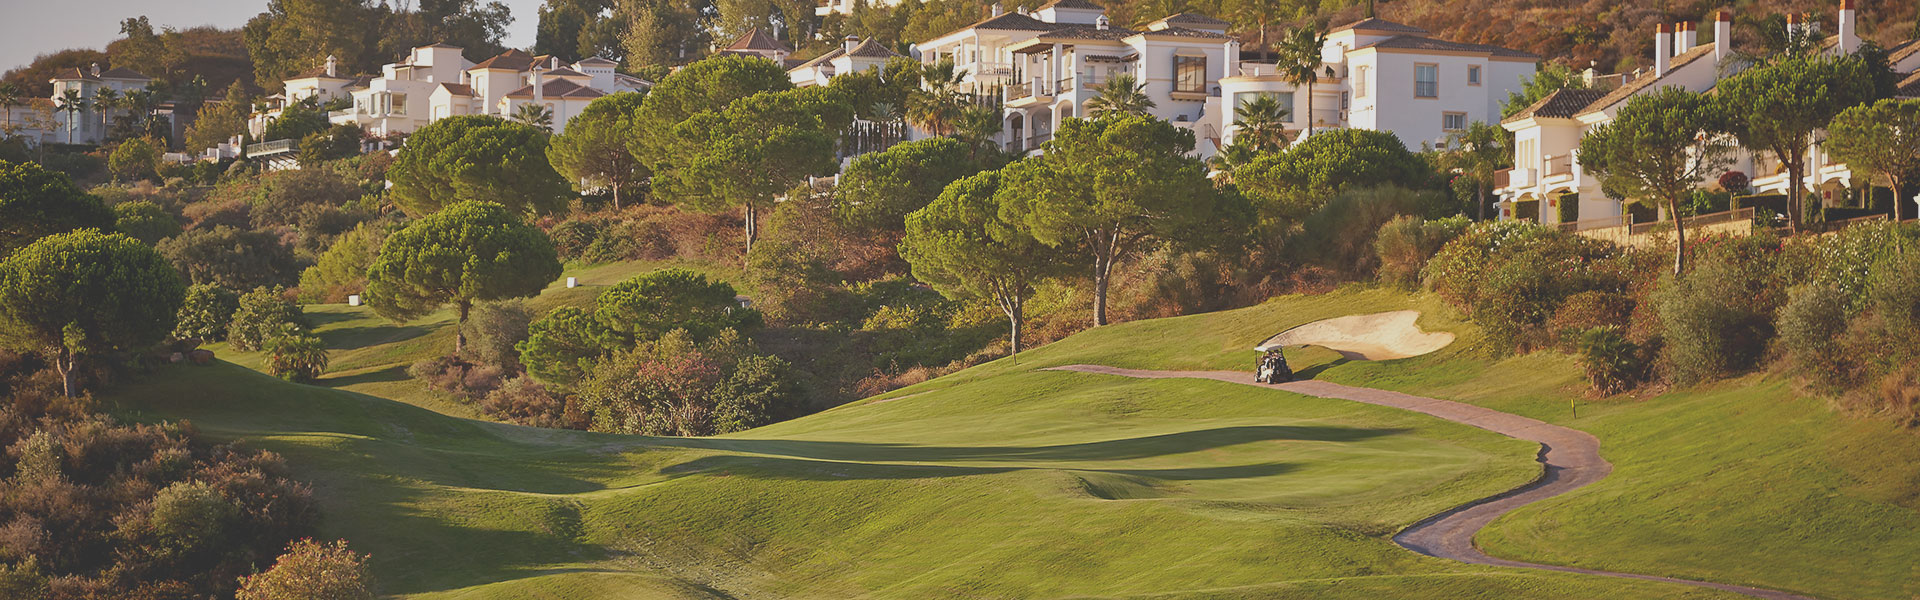 Golf-Expedition-Golf-reizen-Spanje-Regio-Malaga-La-Cala-Resort-golf-course-resort-grijs